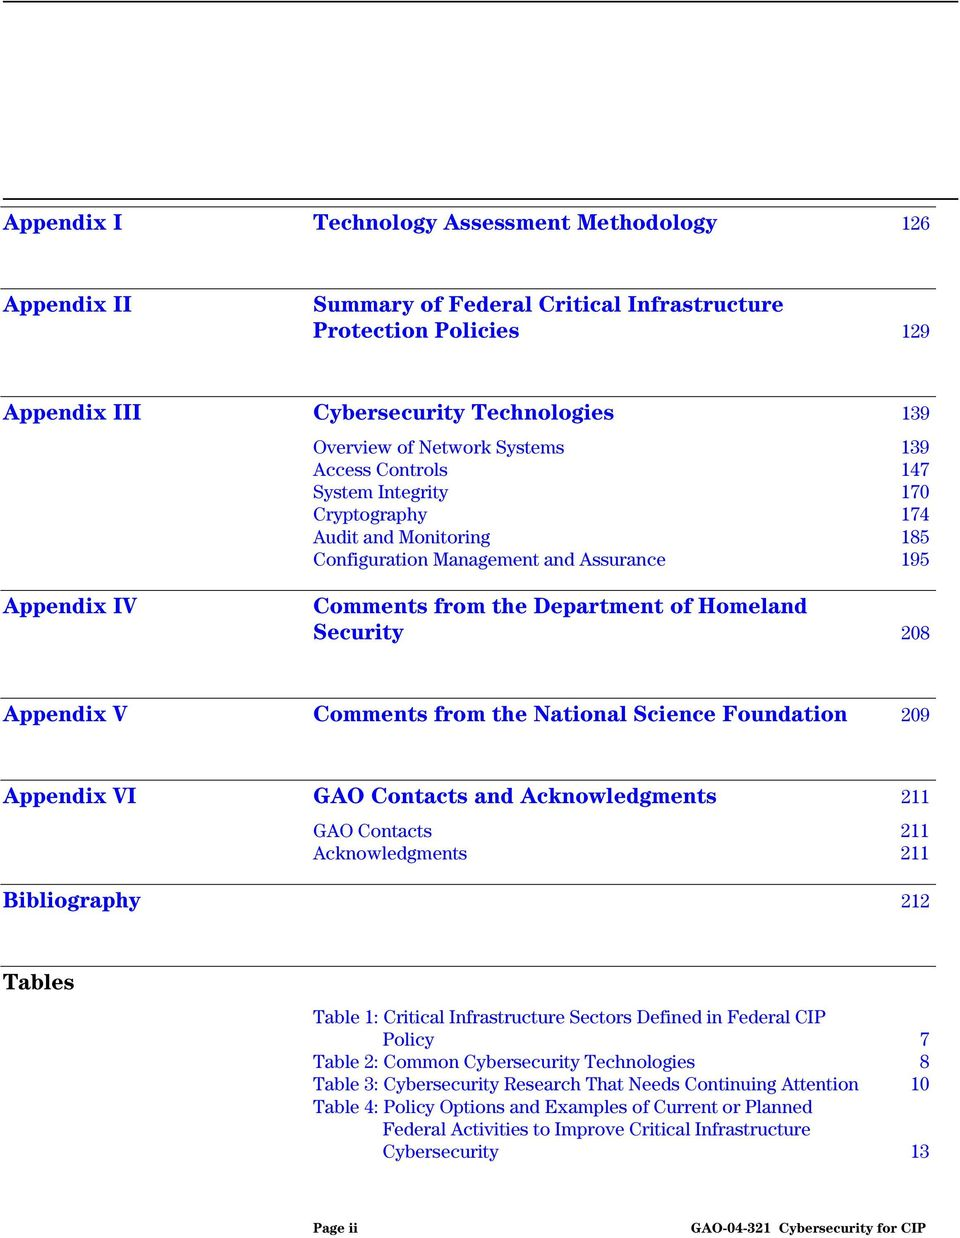 Appendix V Comments from the National Science Foundation 209 Appendix VI GAO Contacts and Acknowledgments 211 GAO Contacts 211 Acknowledgments 211 Bibliography 212 Tables Table 1: Critical